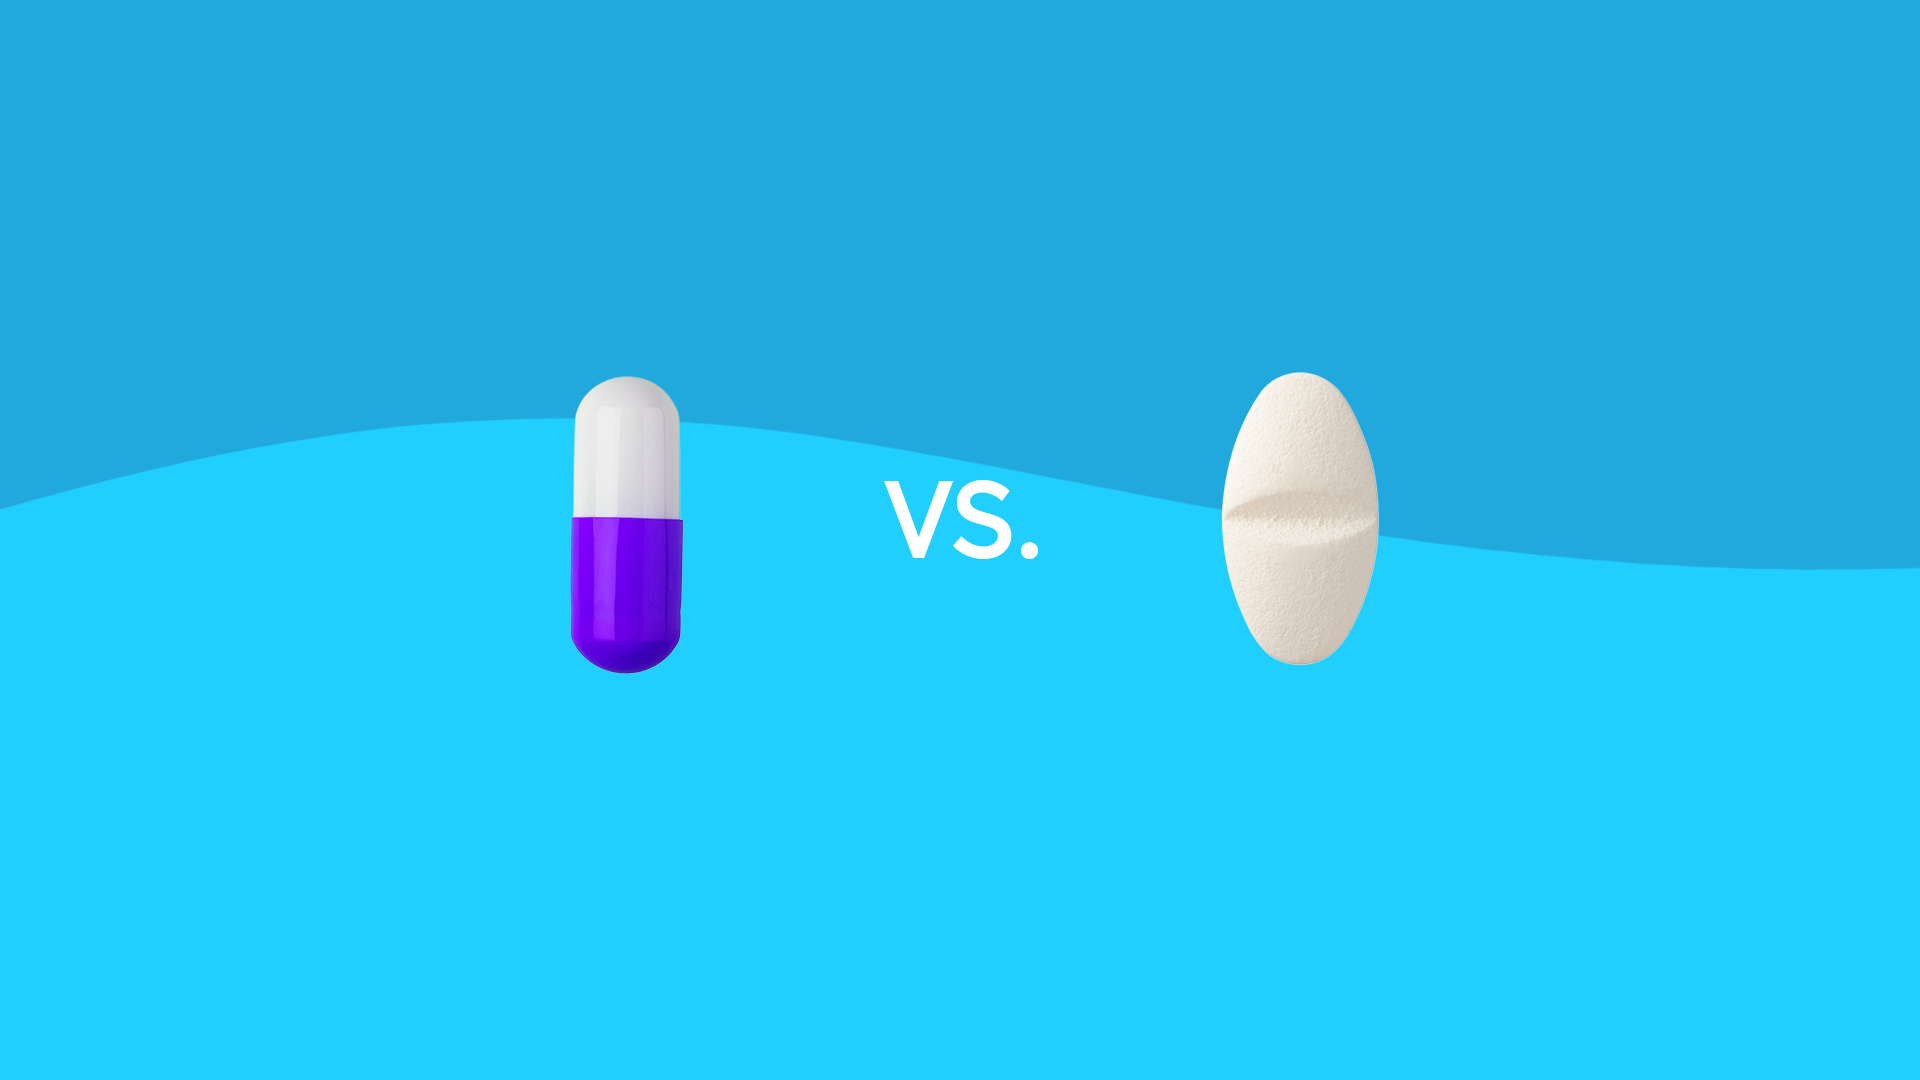 Strattera vs. Adderall: Differences, similarities, and which is better for you